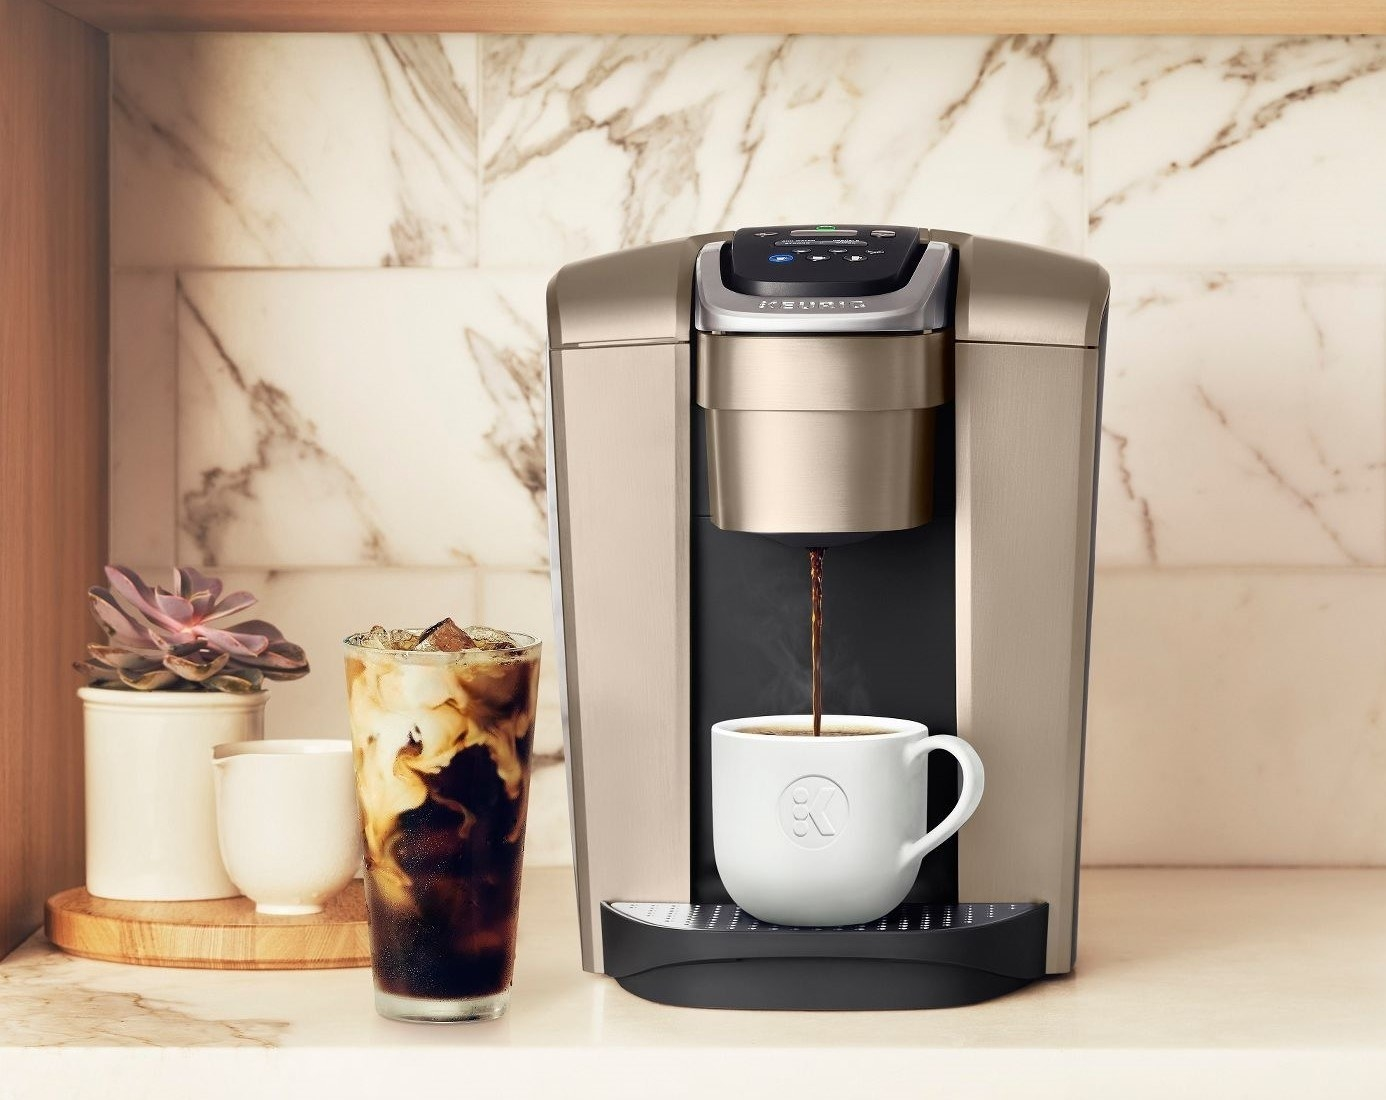 The coffeemaker in gold, shown on a countertop with hot and iced beverages